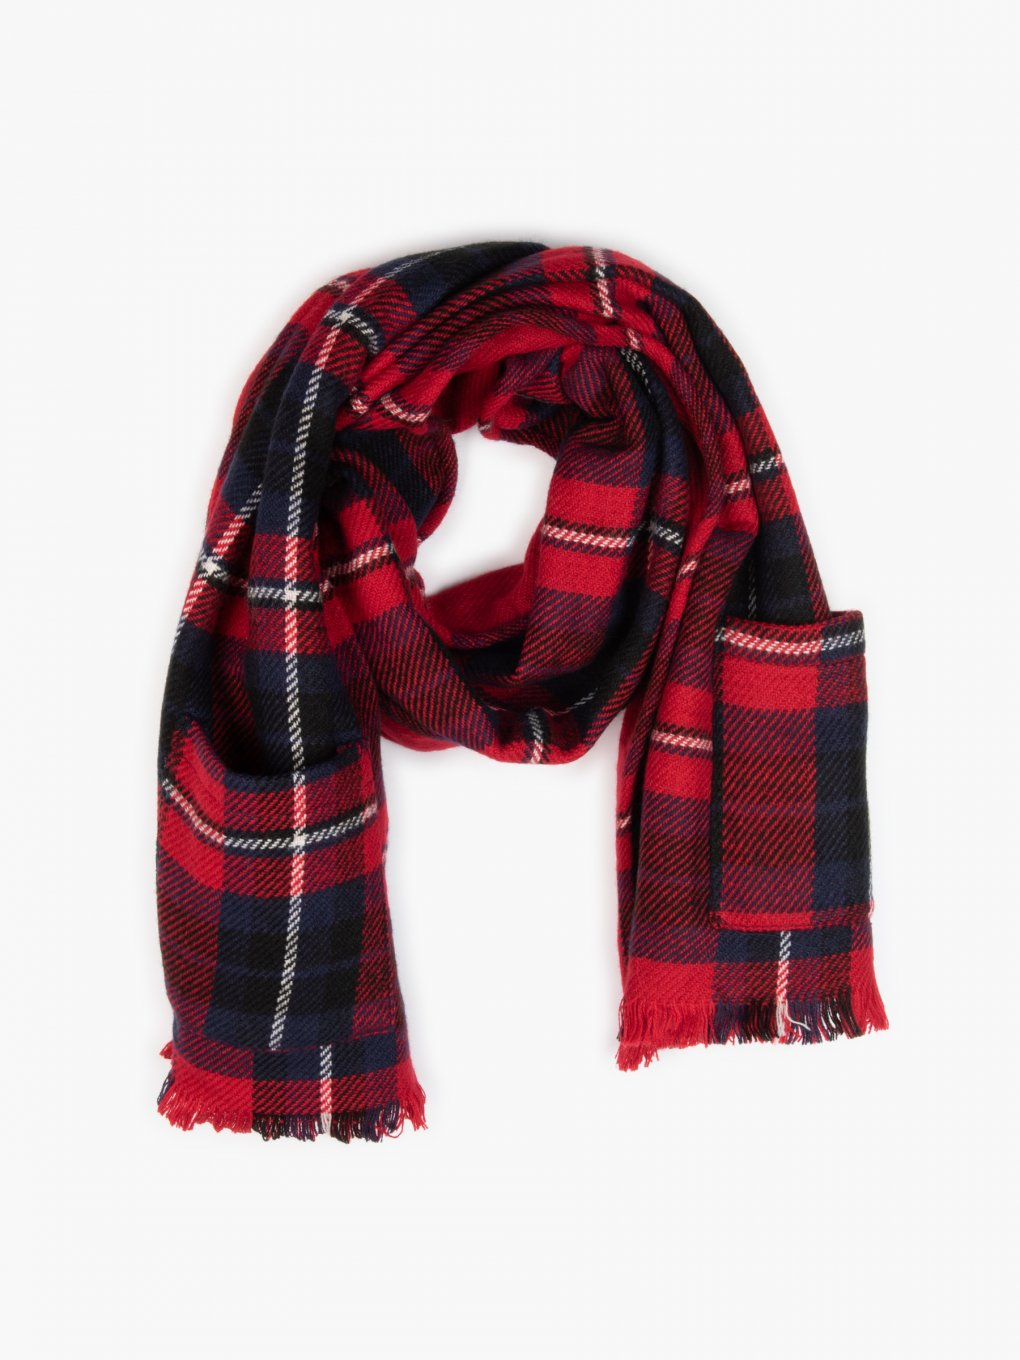 Plaid scarf with pockets